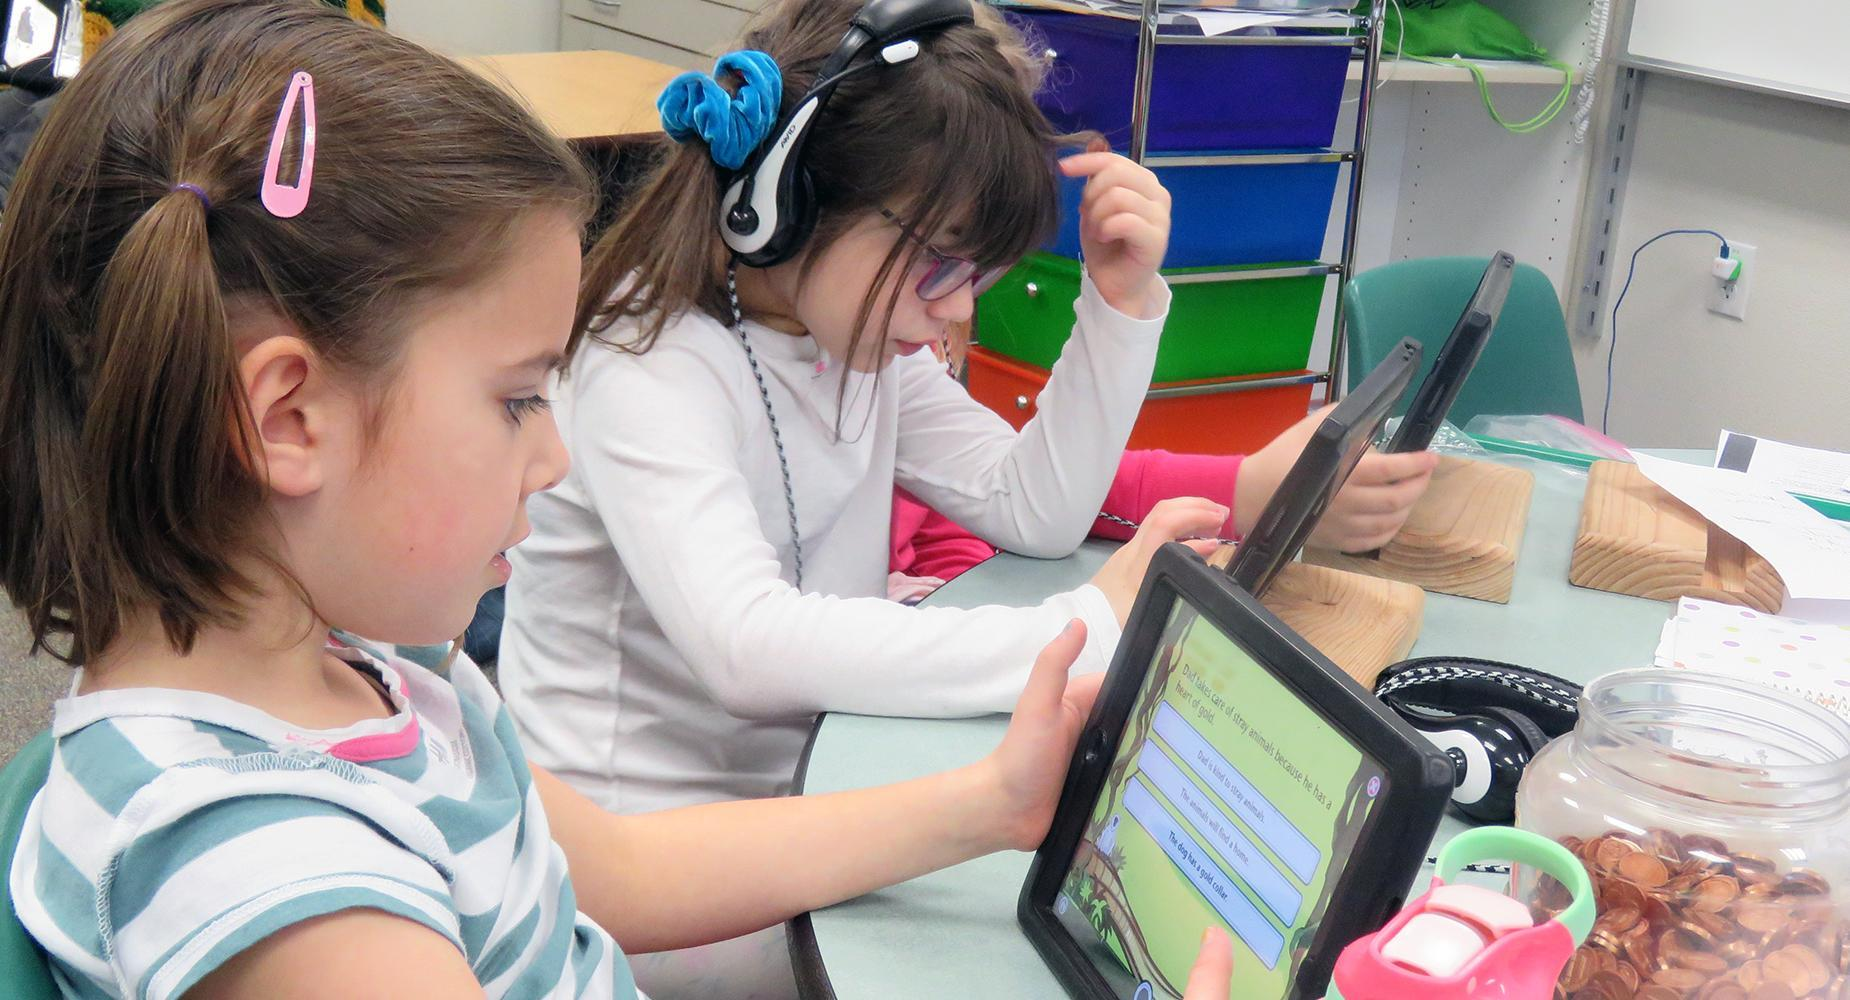 Two girls work on the iPads at their desk.